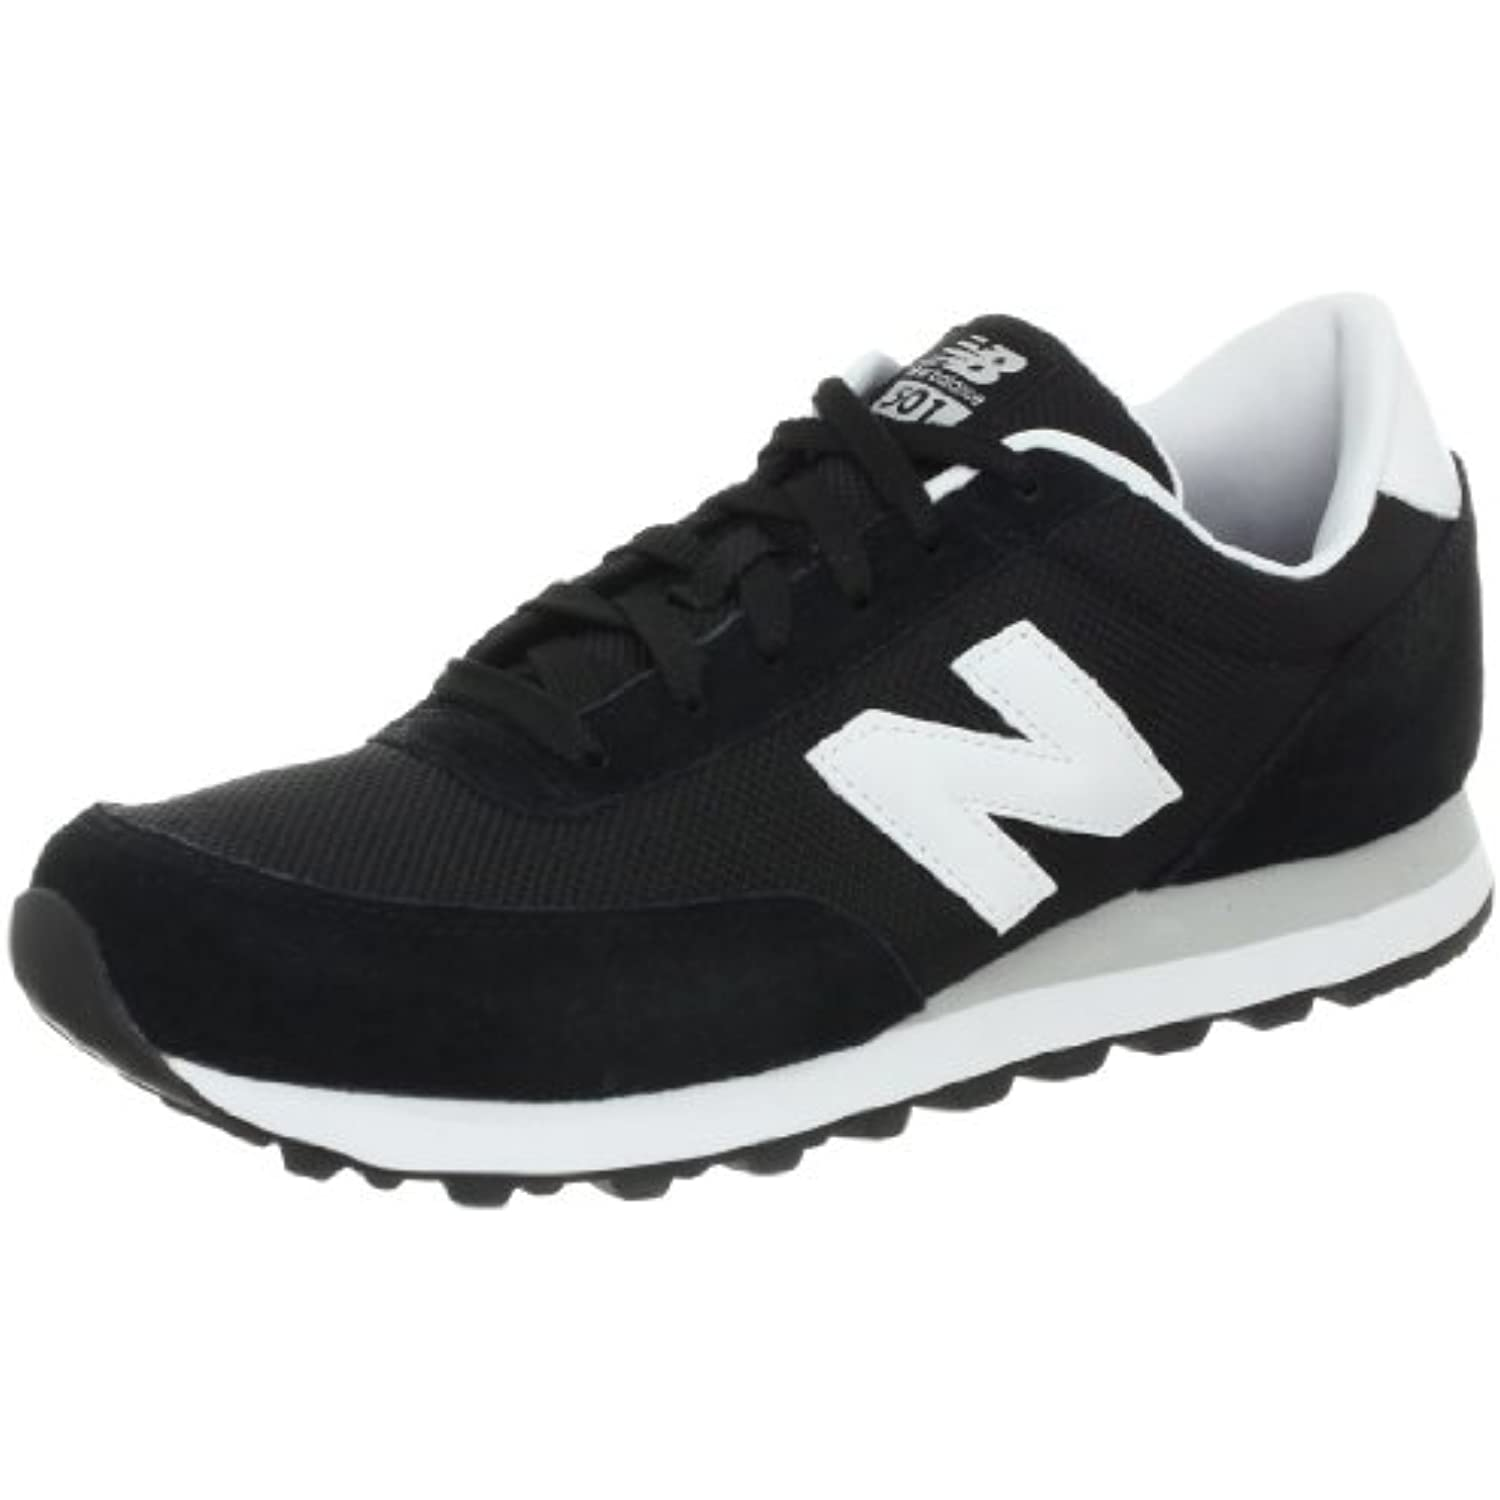 New New New Balance Classics Traditionnels Black White  s Trainers - B008HDTCJM - 91fcb0